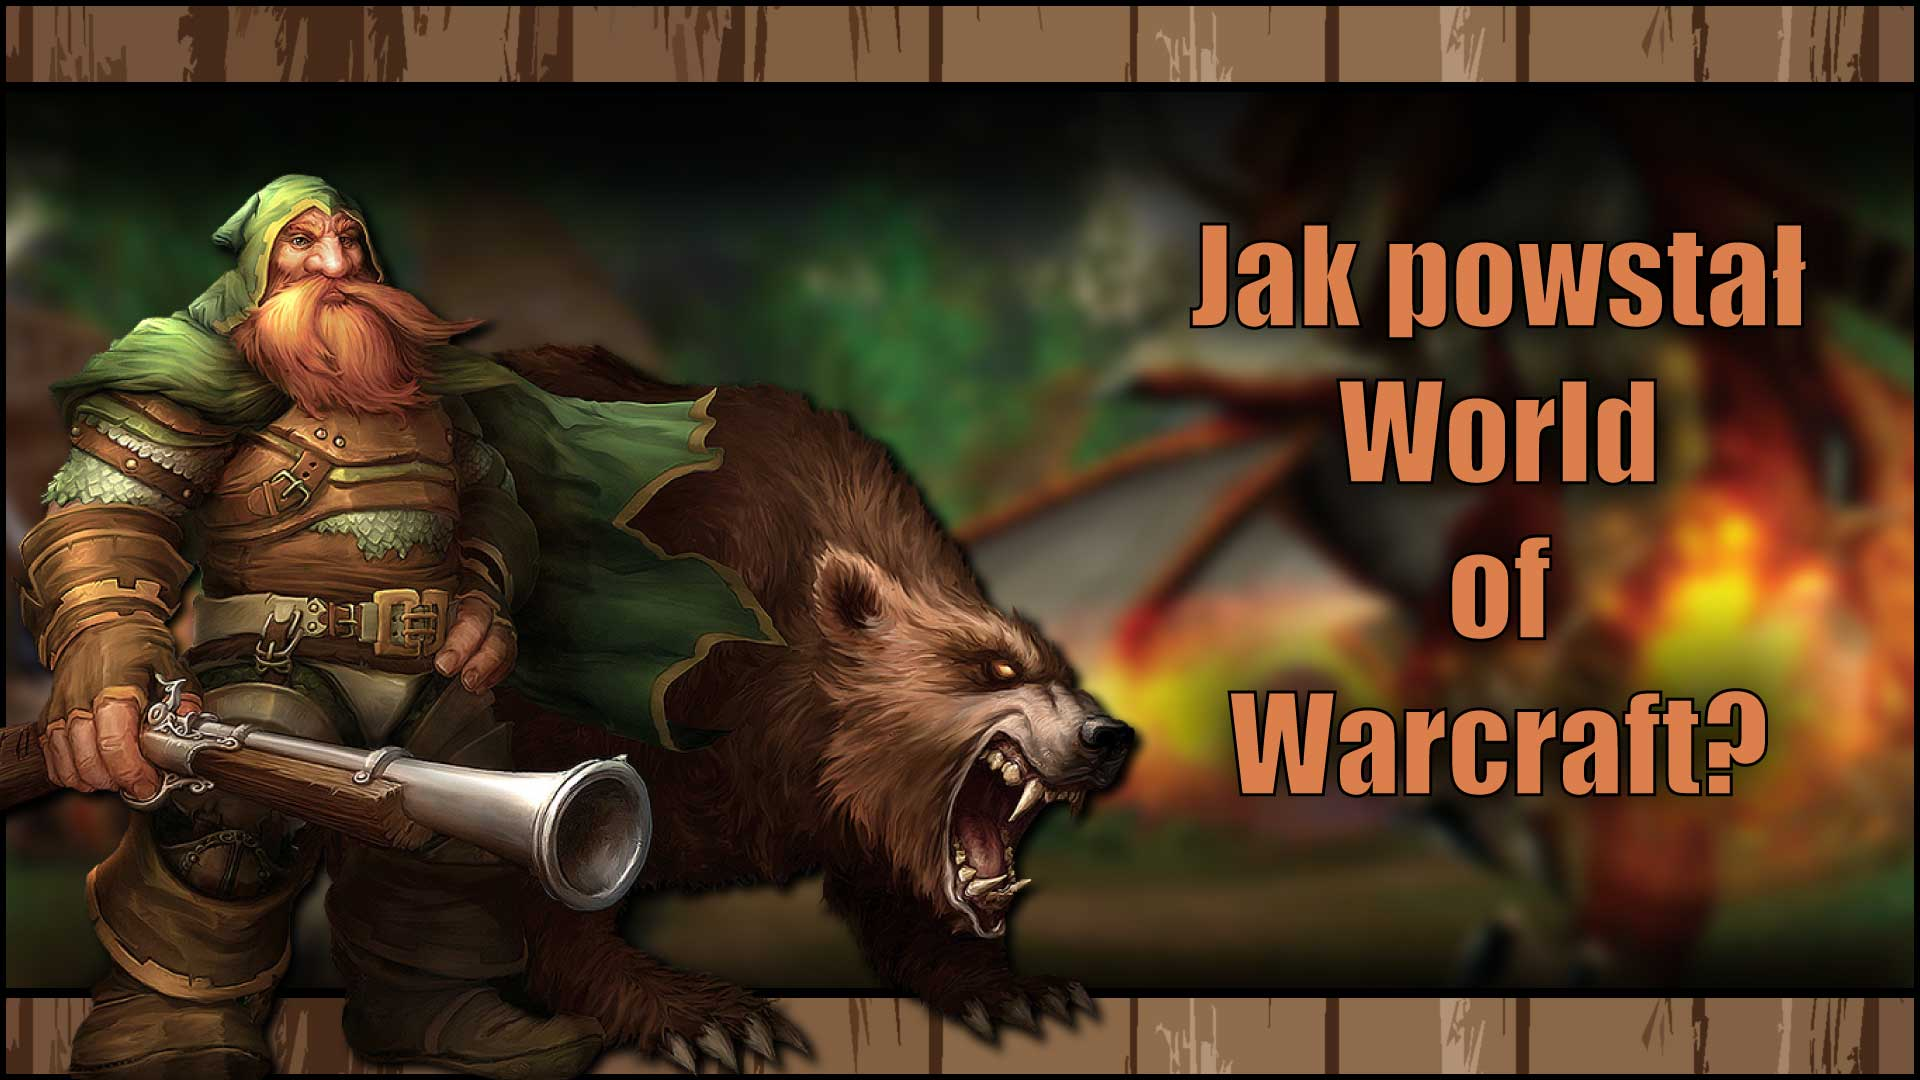 Jak powstał World of Warcraft, legenda MMORPG?